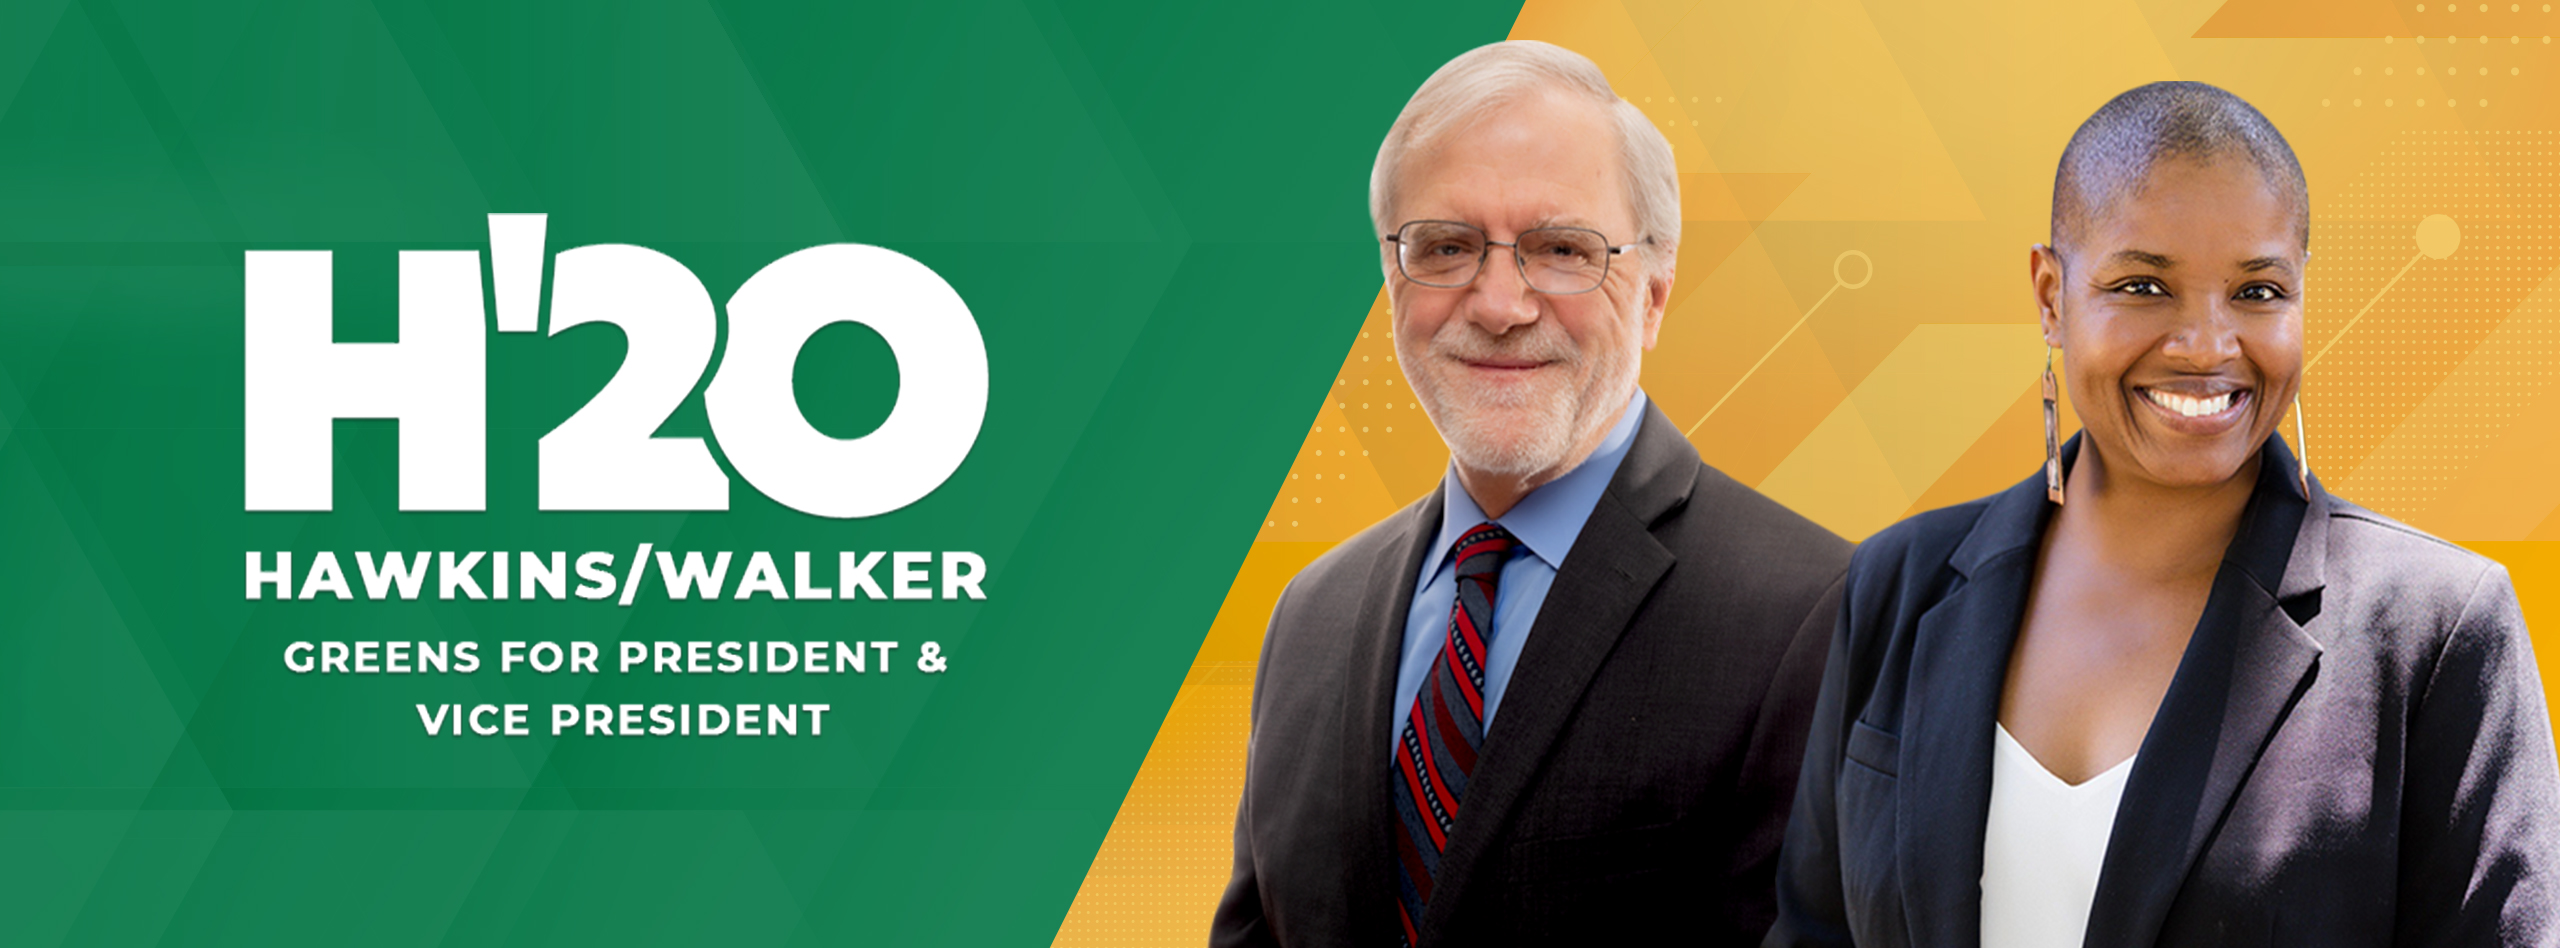 A picture of Howie Hawkins & Angela Walker, a white man and a Black woman